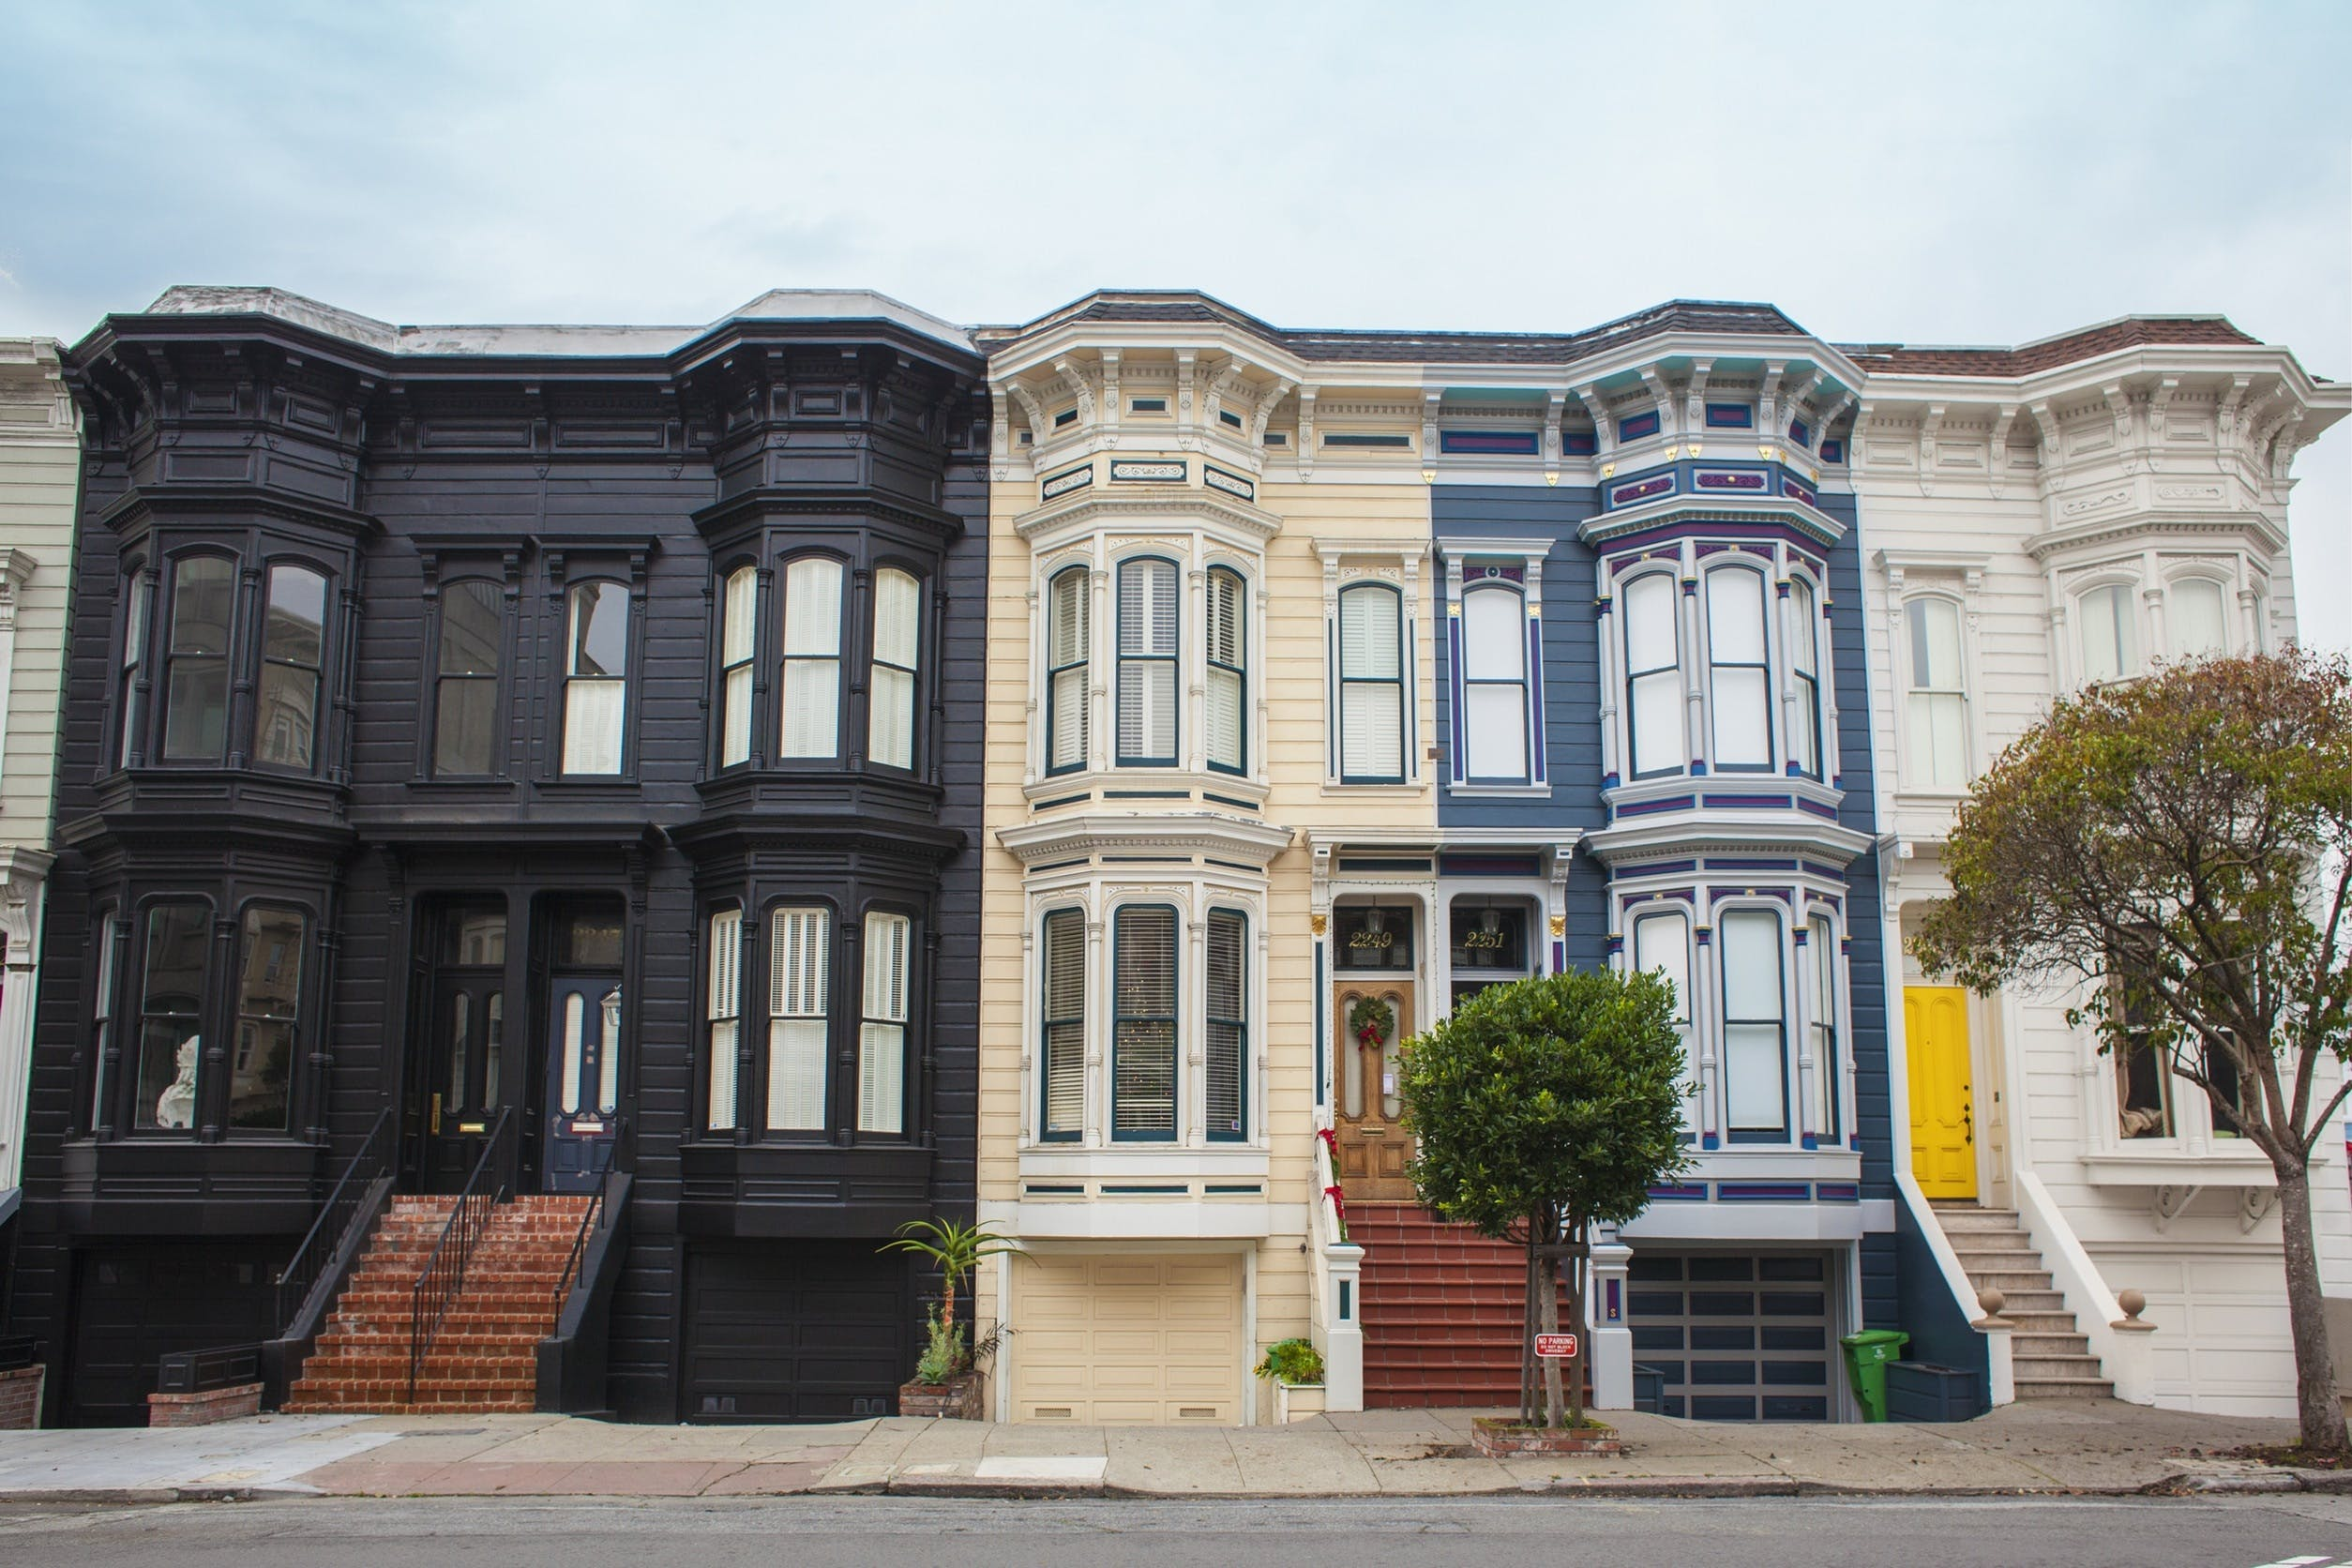 Free stock photo of houses, building, architecture, windows